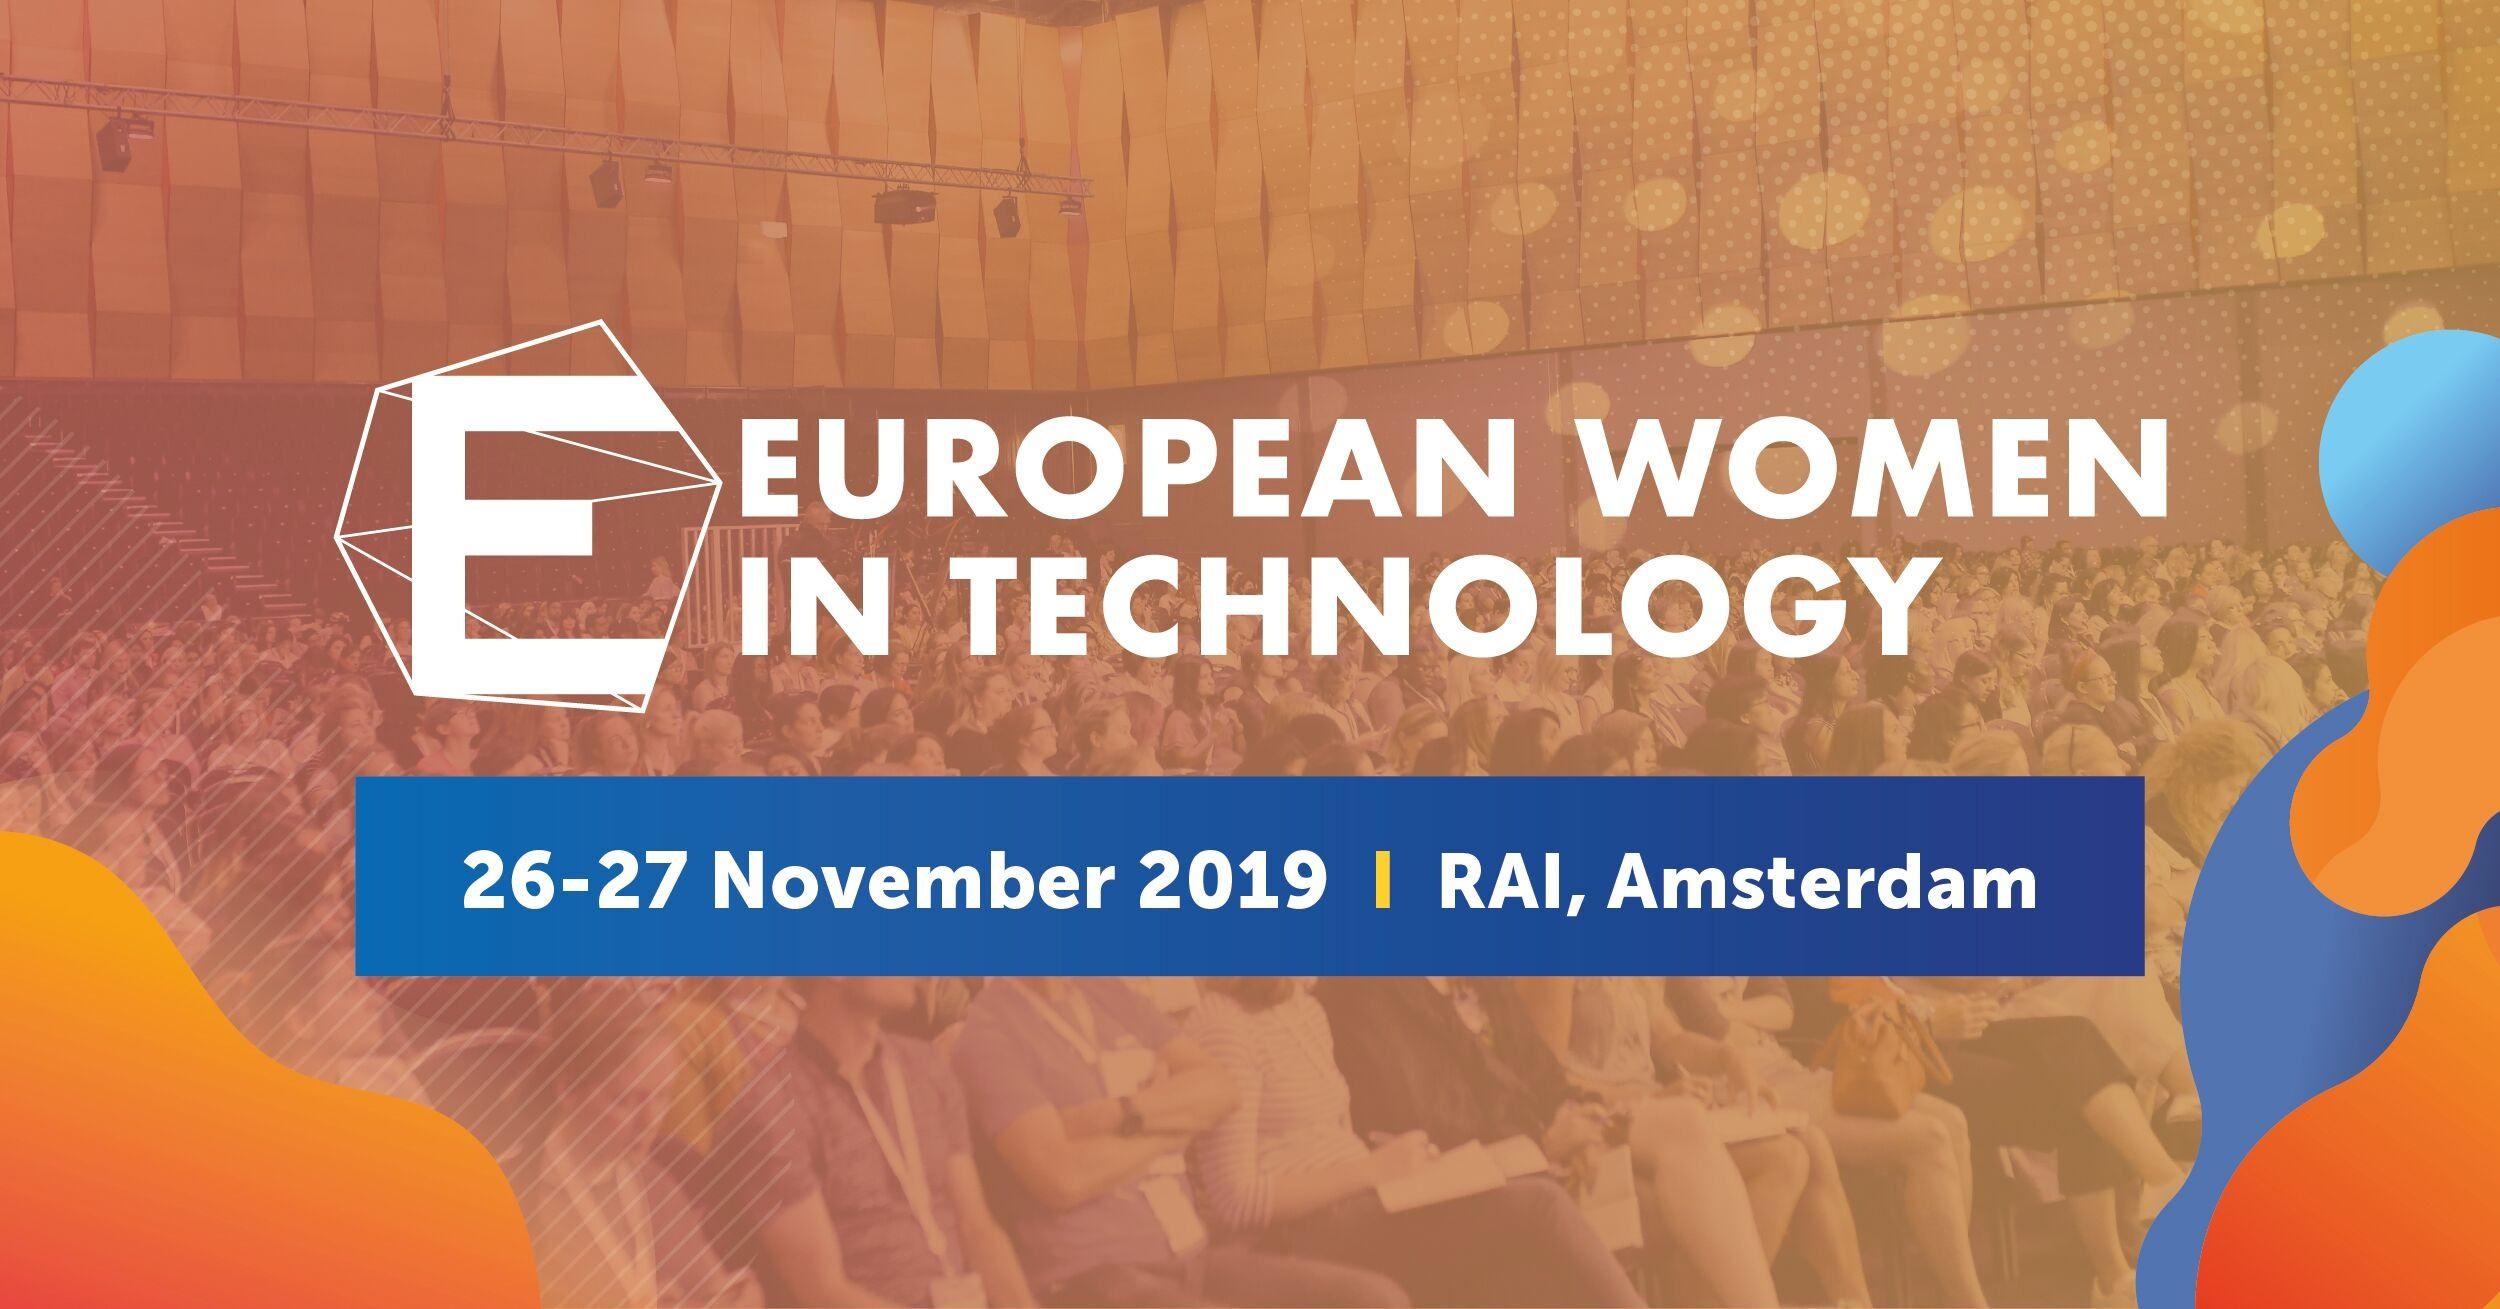 Join us at European Women in Technology